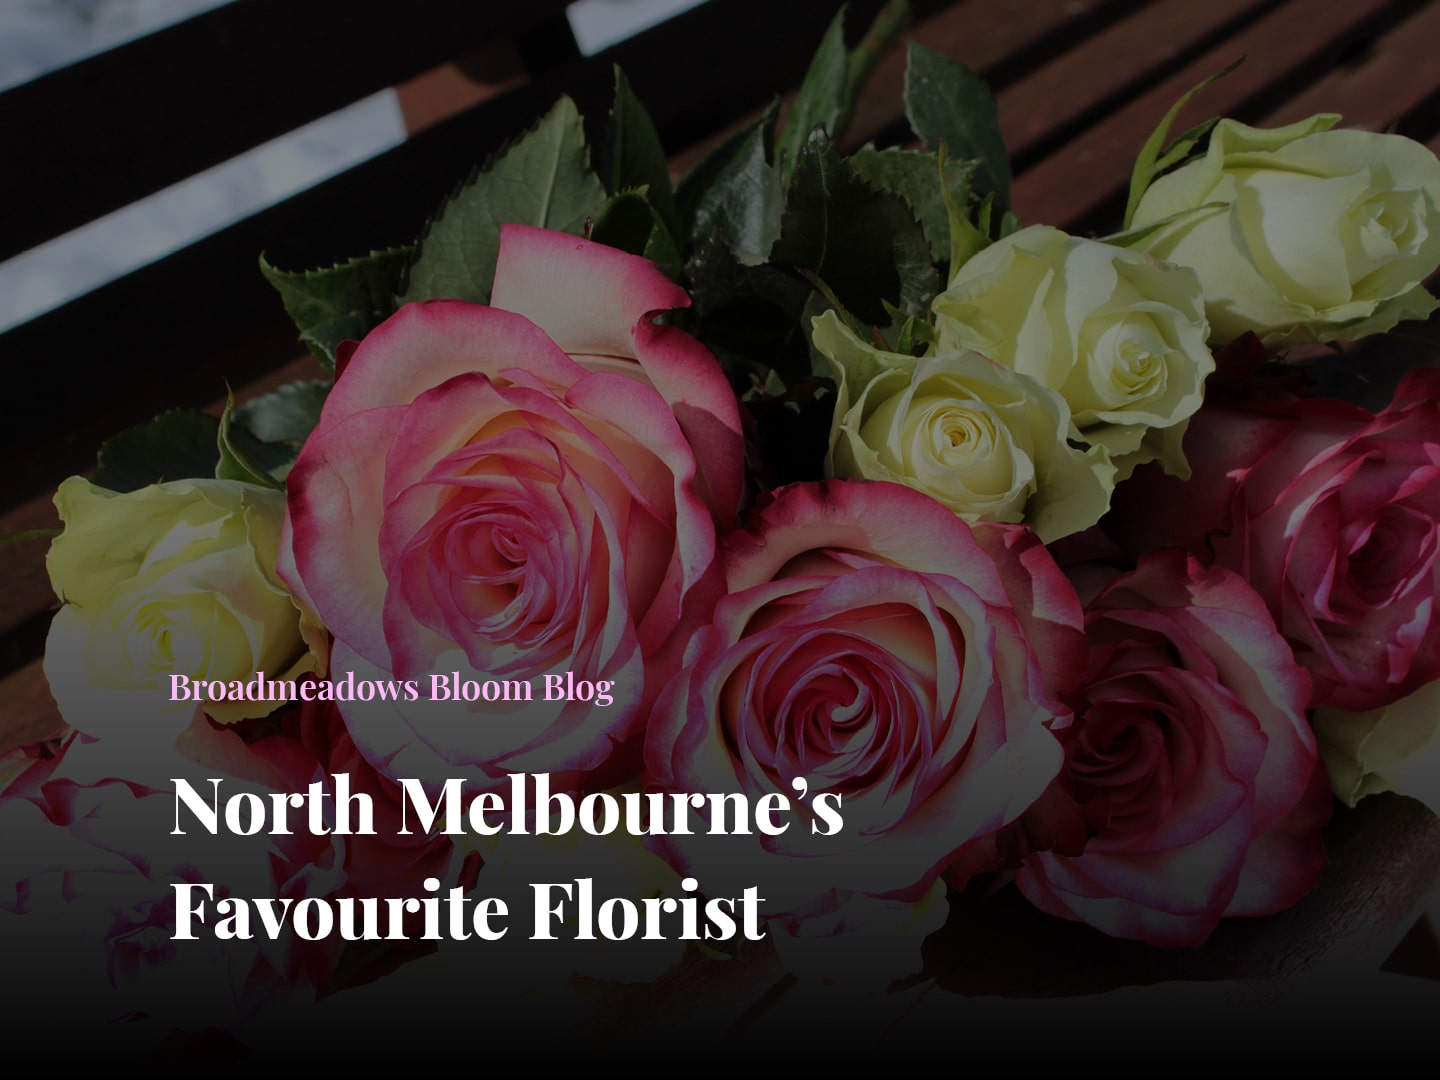 North Melbourne's Favourite Florist